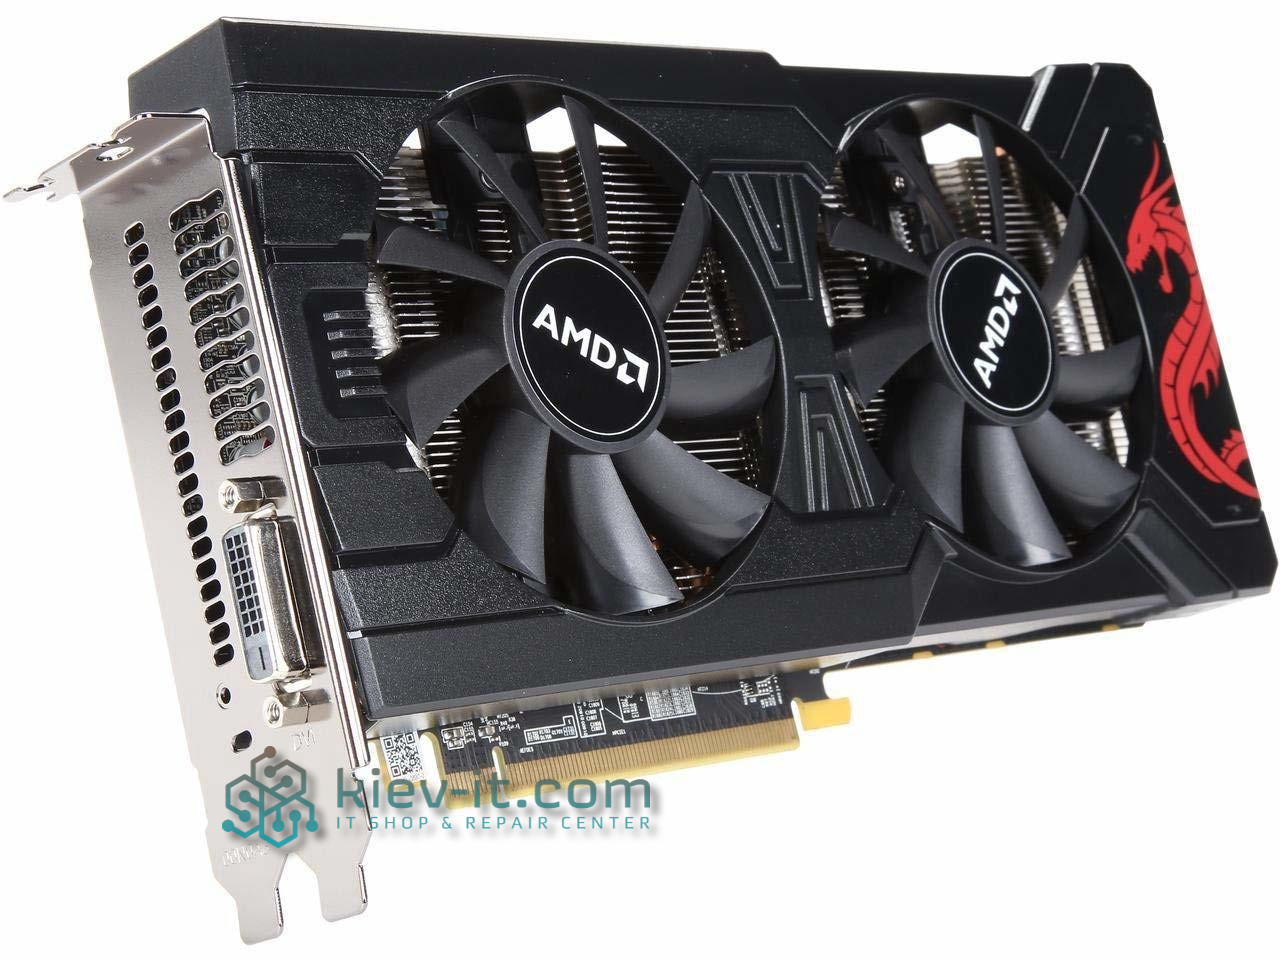 "Видеокарта PowerColor Radeon RX 570 8GB (AXRX 570 8GBD5-DM) GDDR5 ""Over-Stock"" Б/У"